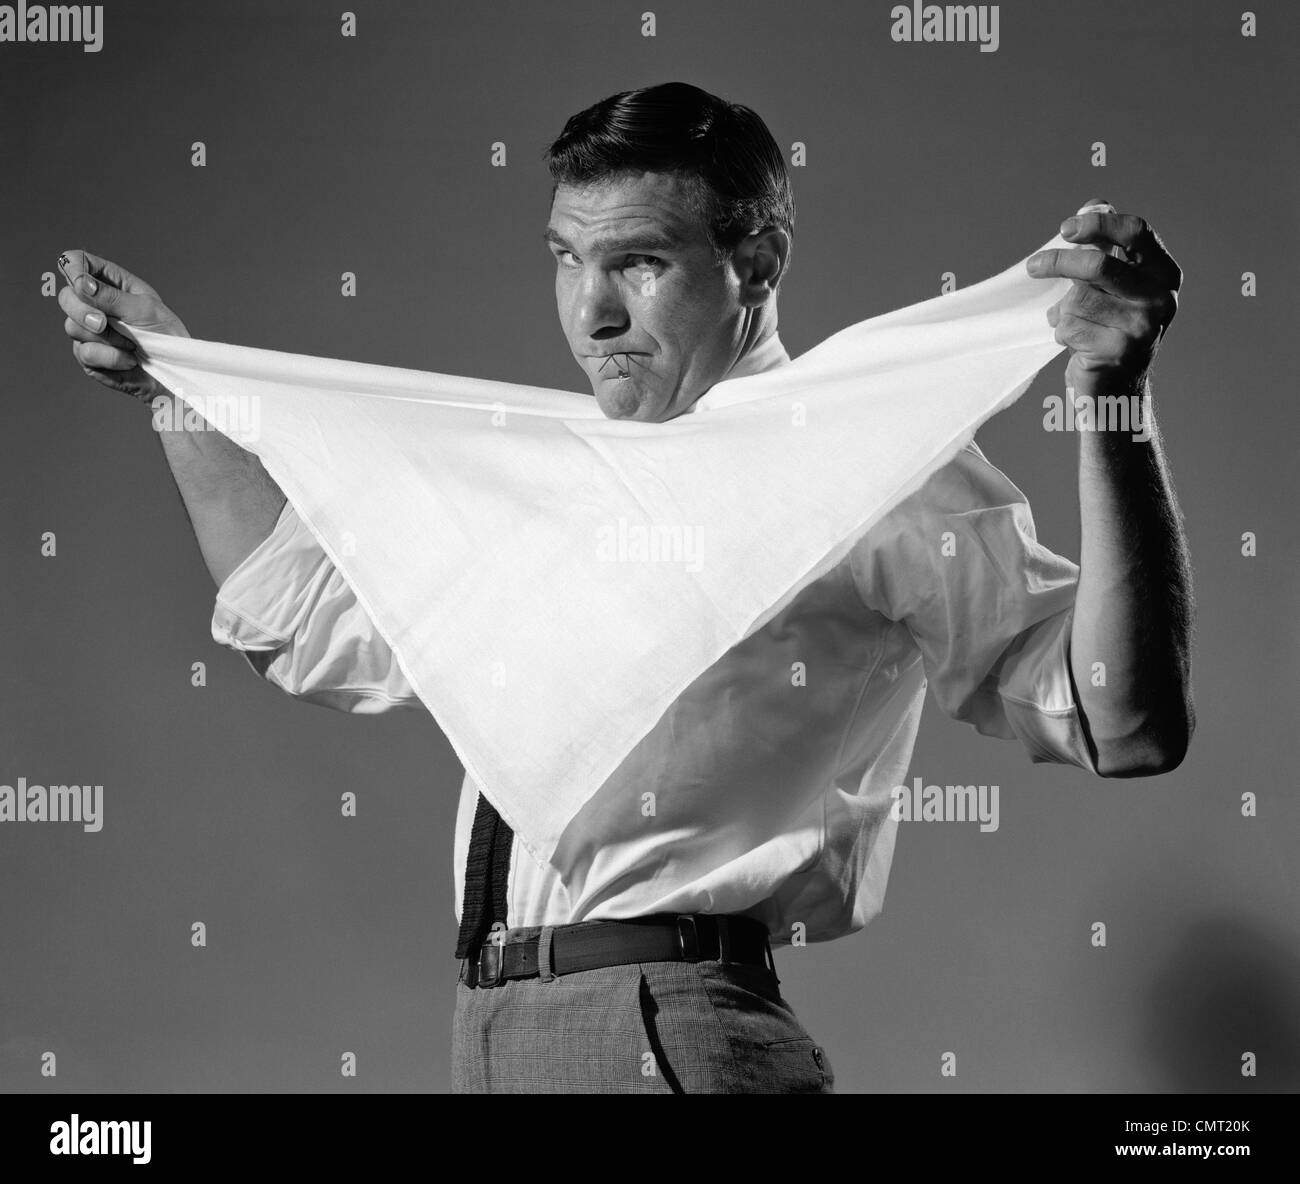 1960s MAN HOLDING CLOTH DIAPER FOLDED IN TRIANGLE UNDER CHIN WITH SAFETY PINS IN MOUTH LOOKING AT CAMERA ANGRILY - Stock Image